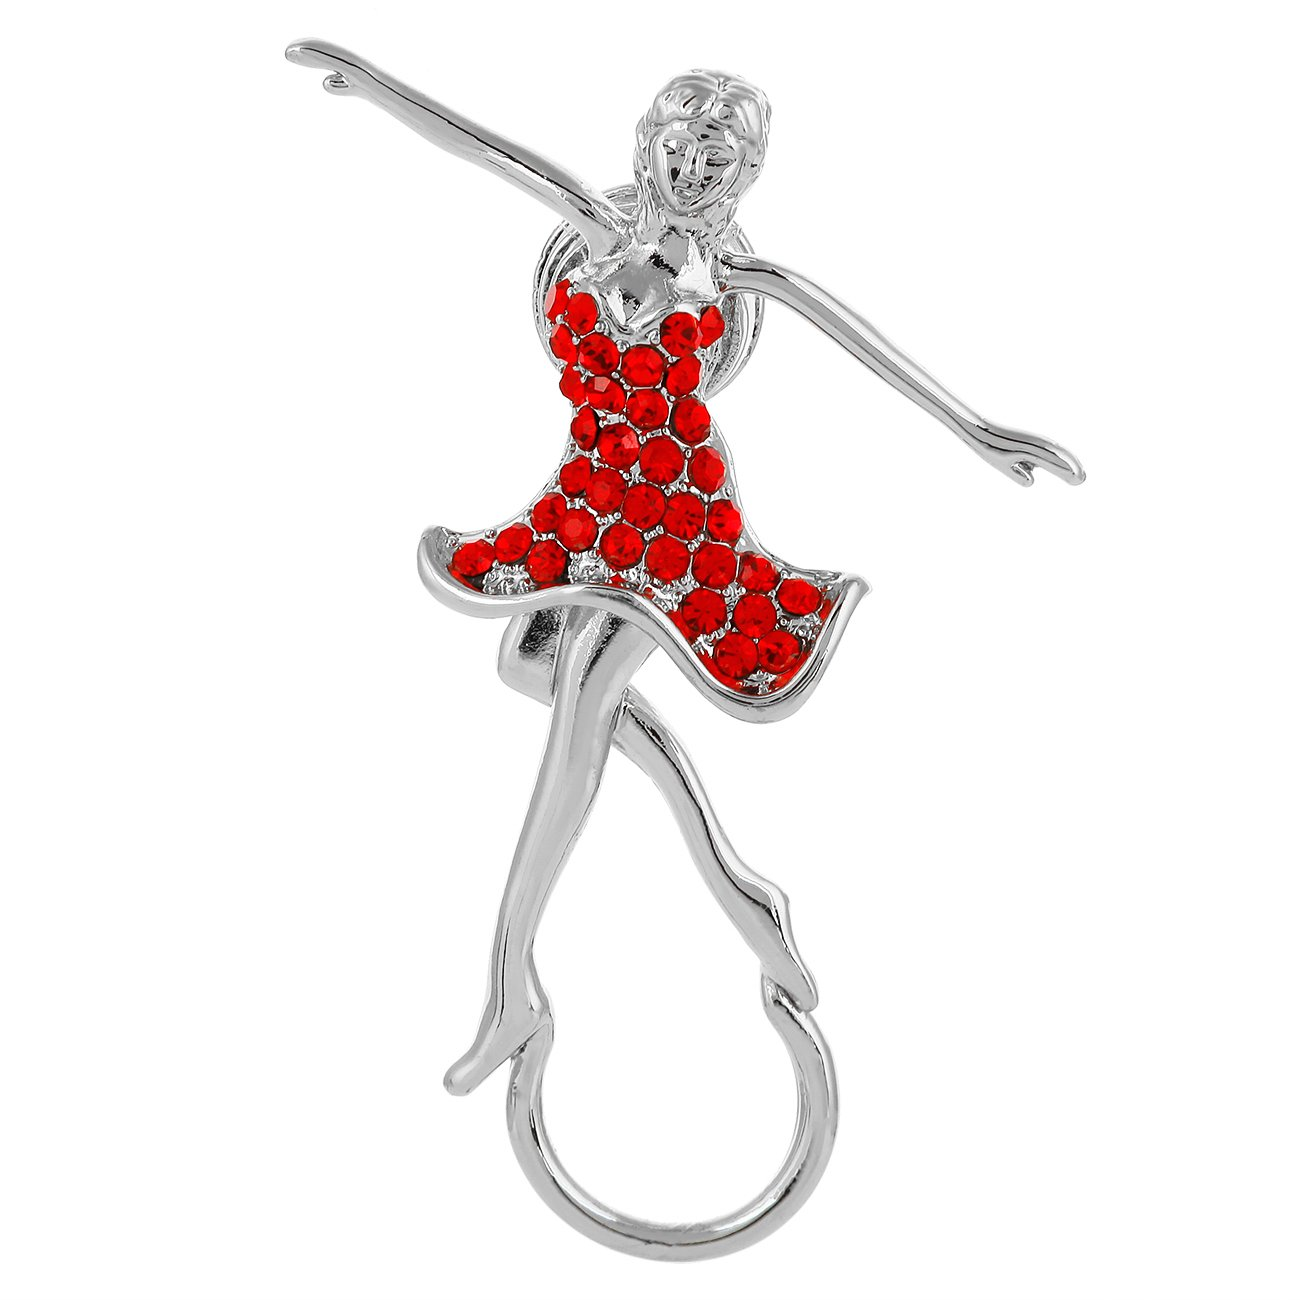 RUXIANG Dancing Girl Wear Red Crystal Dress Magnetic Glasses Holder Brooch Pin Clothes Jewelry (silver)